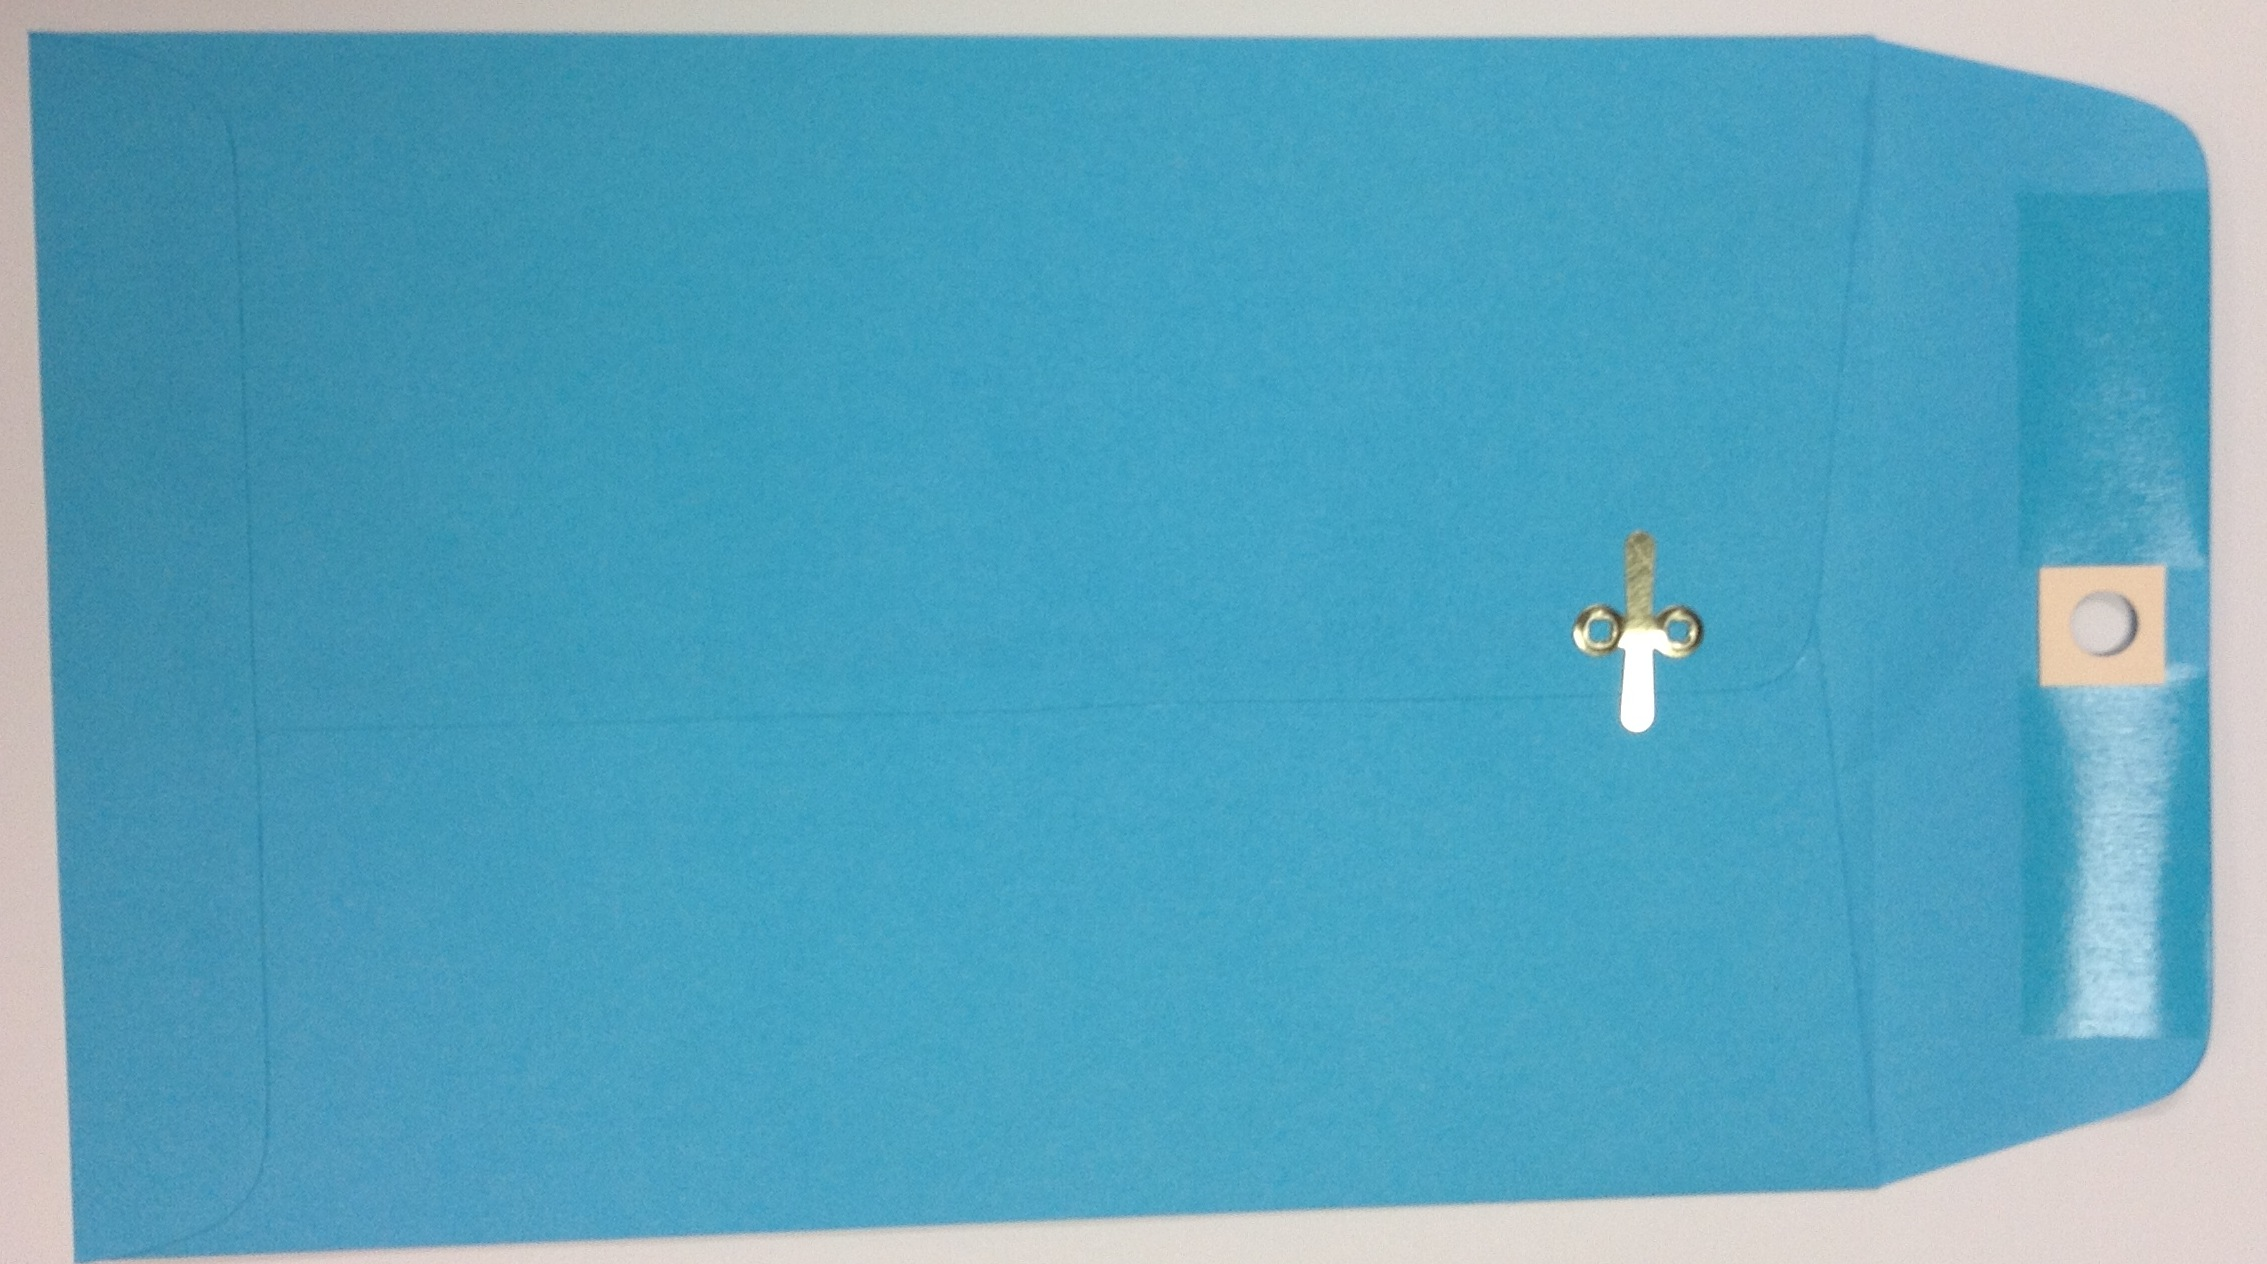 6X9 CLASP ENVELOPES BRIGHT BLUE 10s